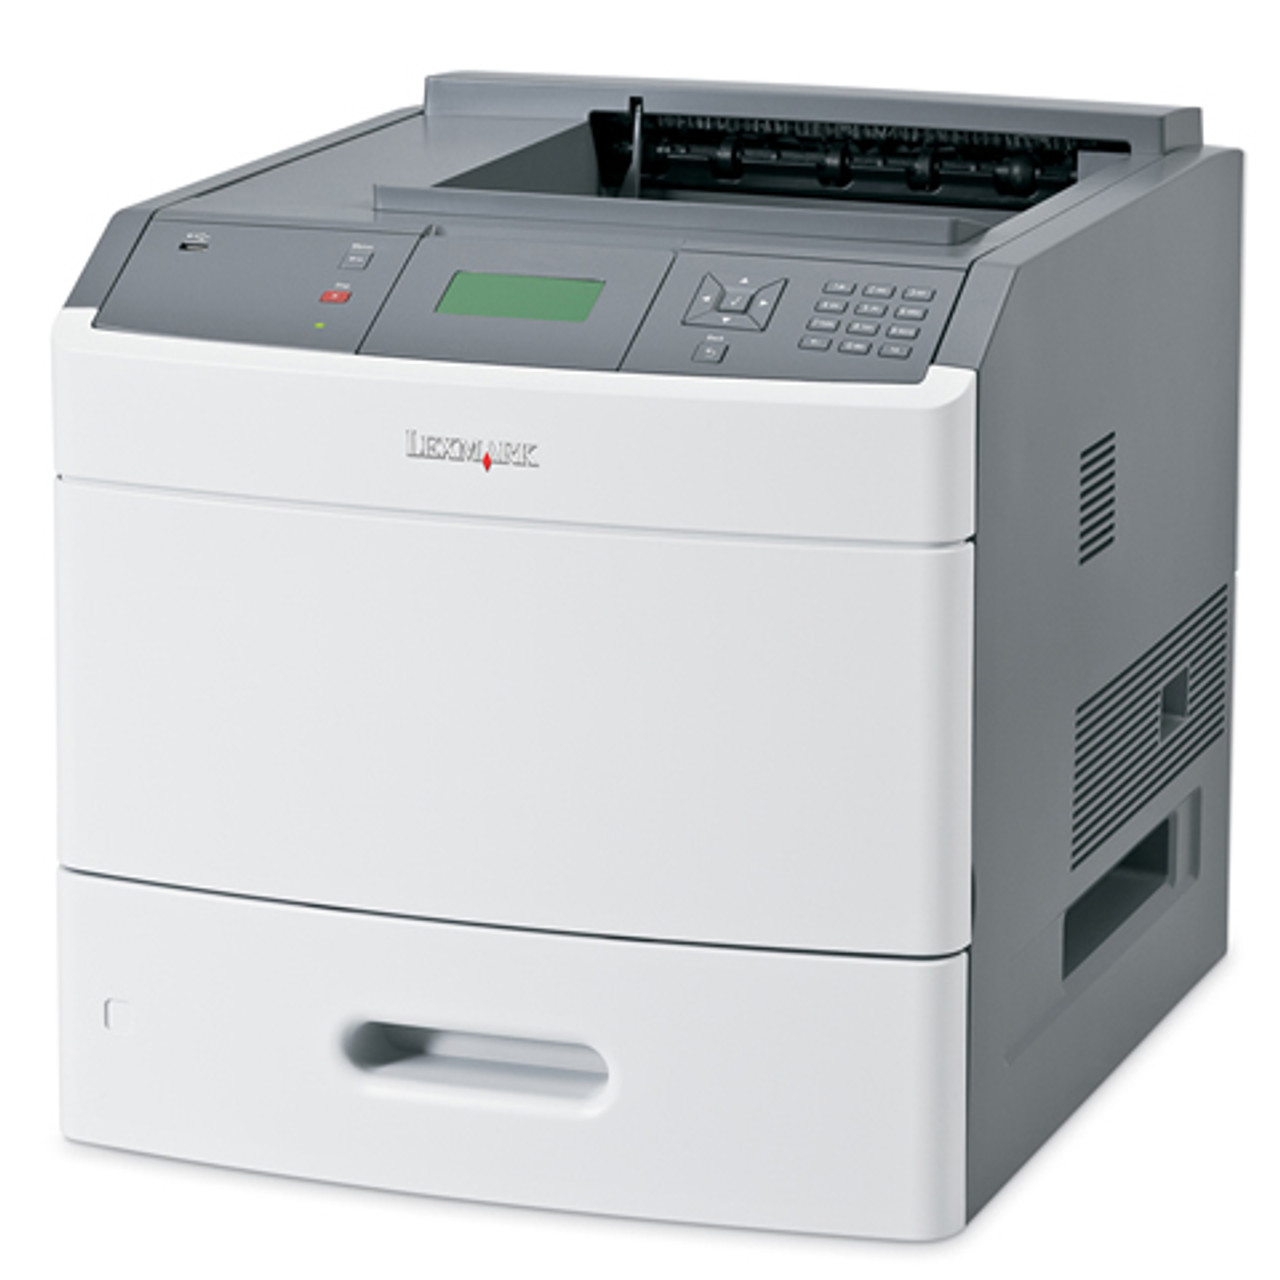 Lexmark T654dn - 30G0300 - Lexmar Laser Printer for sale